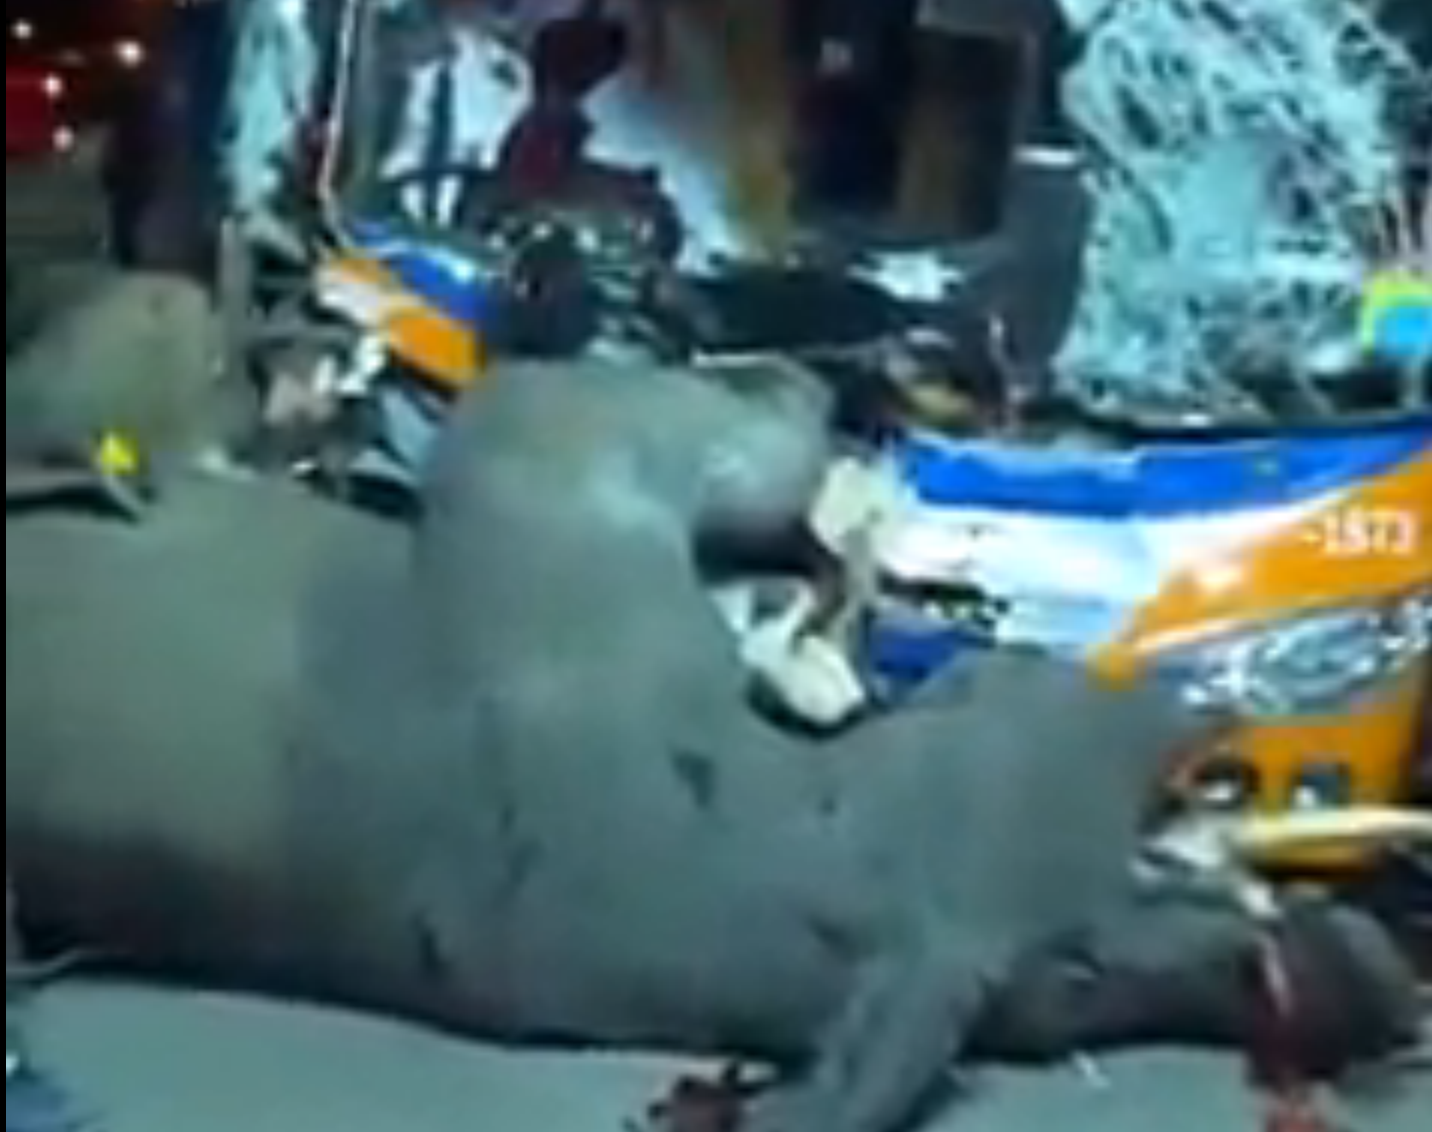 The elephant was hit on a motorway in Thailand